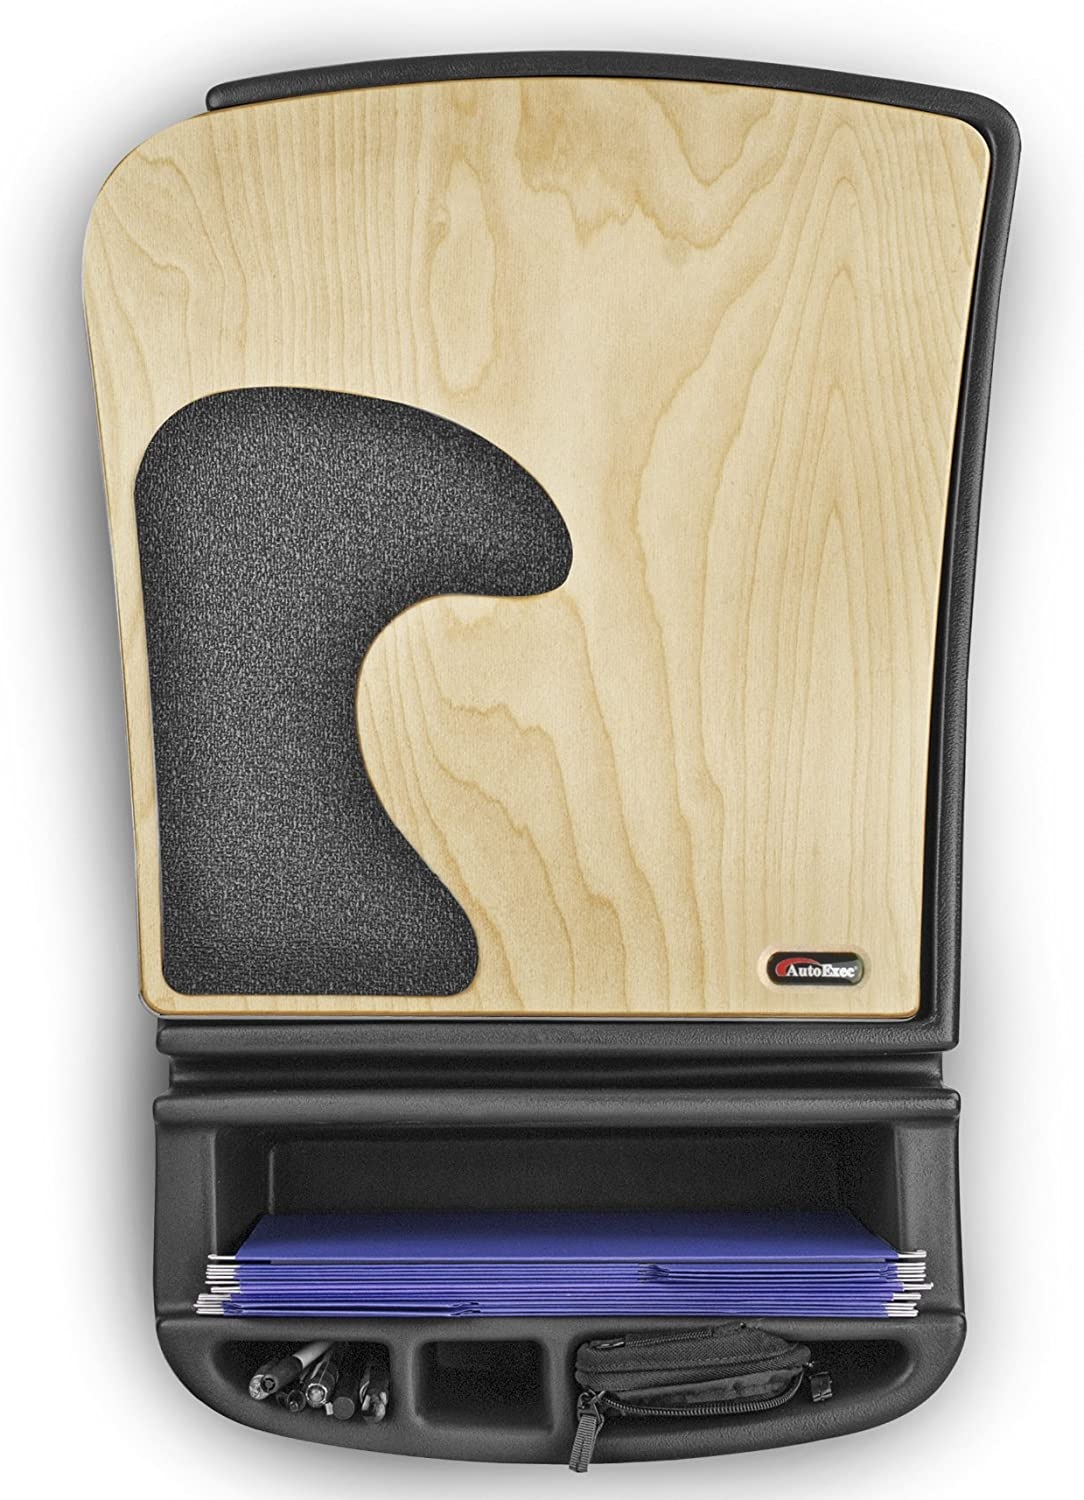 Mahogany Finish with Printer Stand /& Built-in Power Inverter AutoExec AUE24103 Built Stand Efficiency GripMaster Car Desk